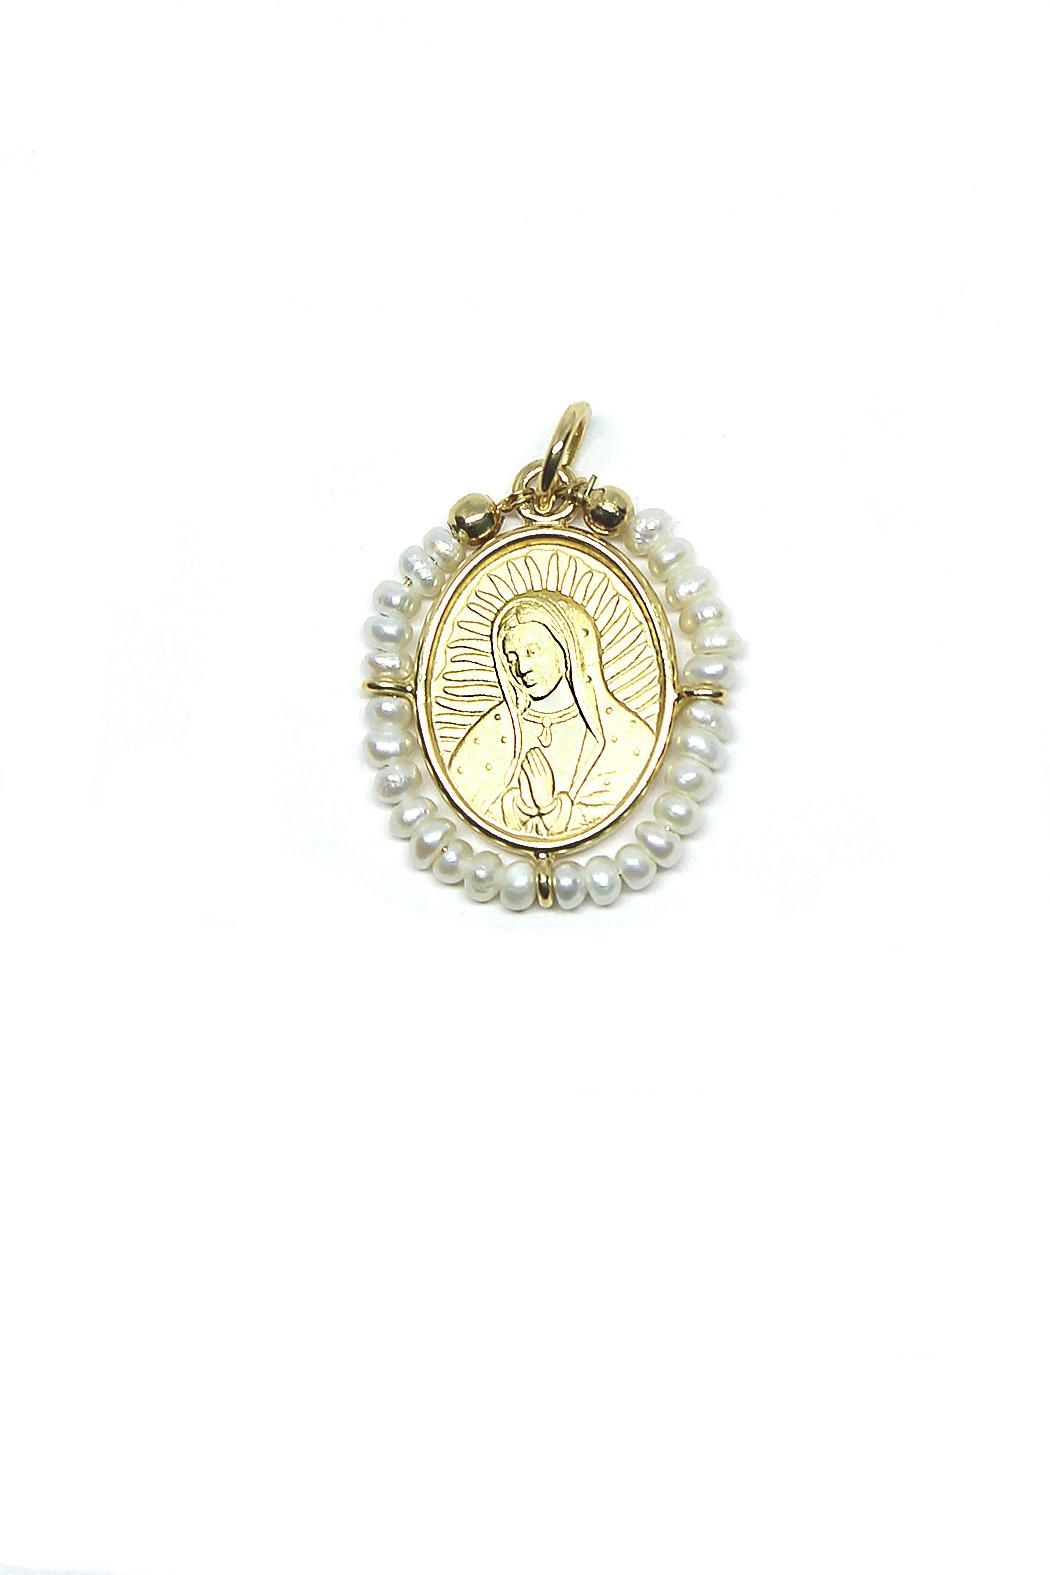 TINK TINK Guadalupe's Virgin Medal - Main Image